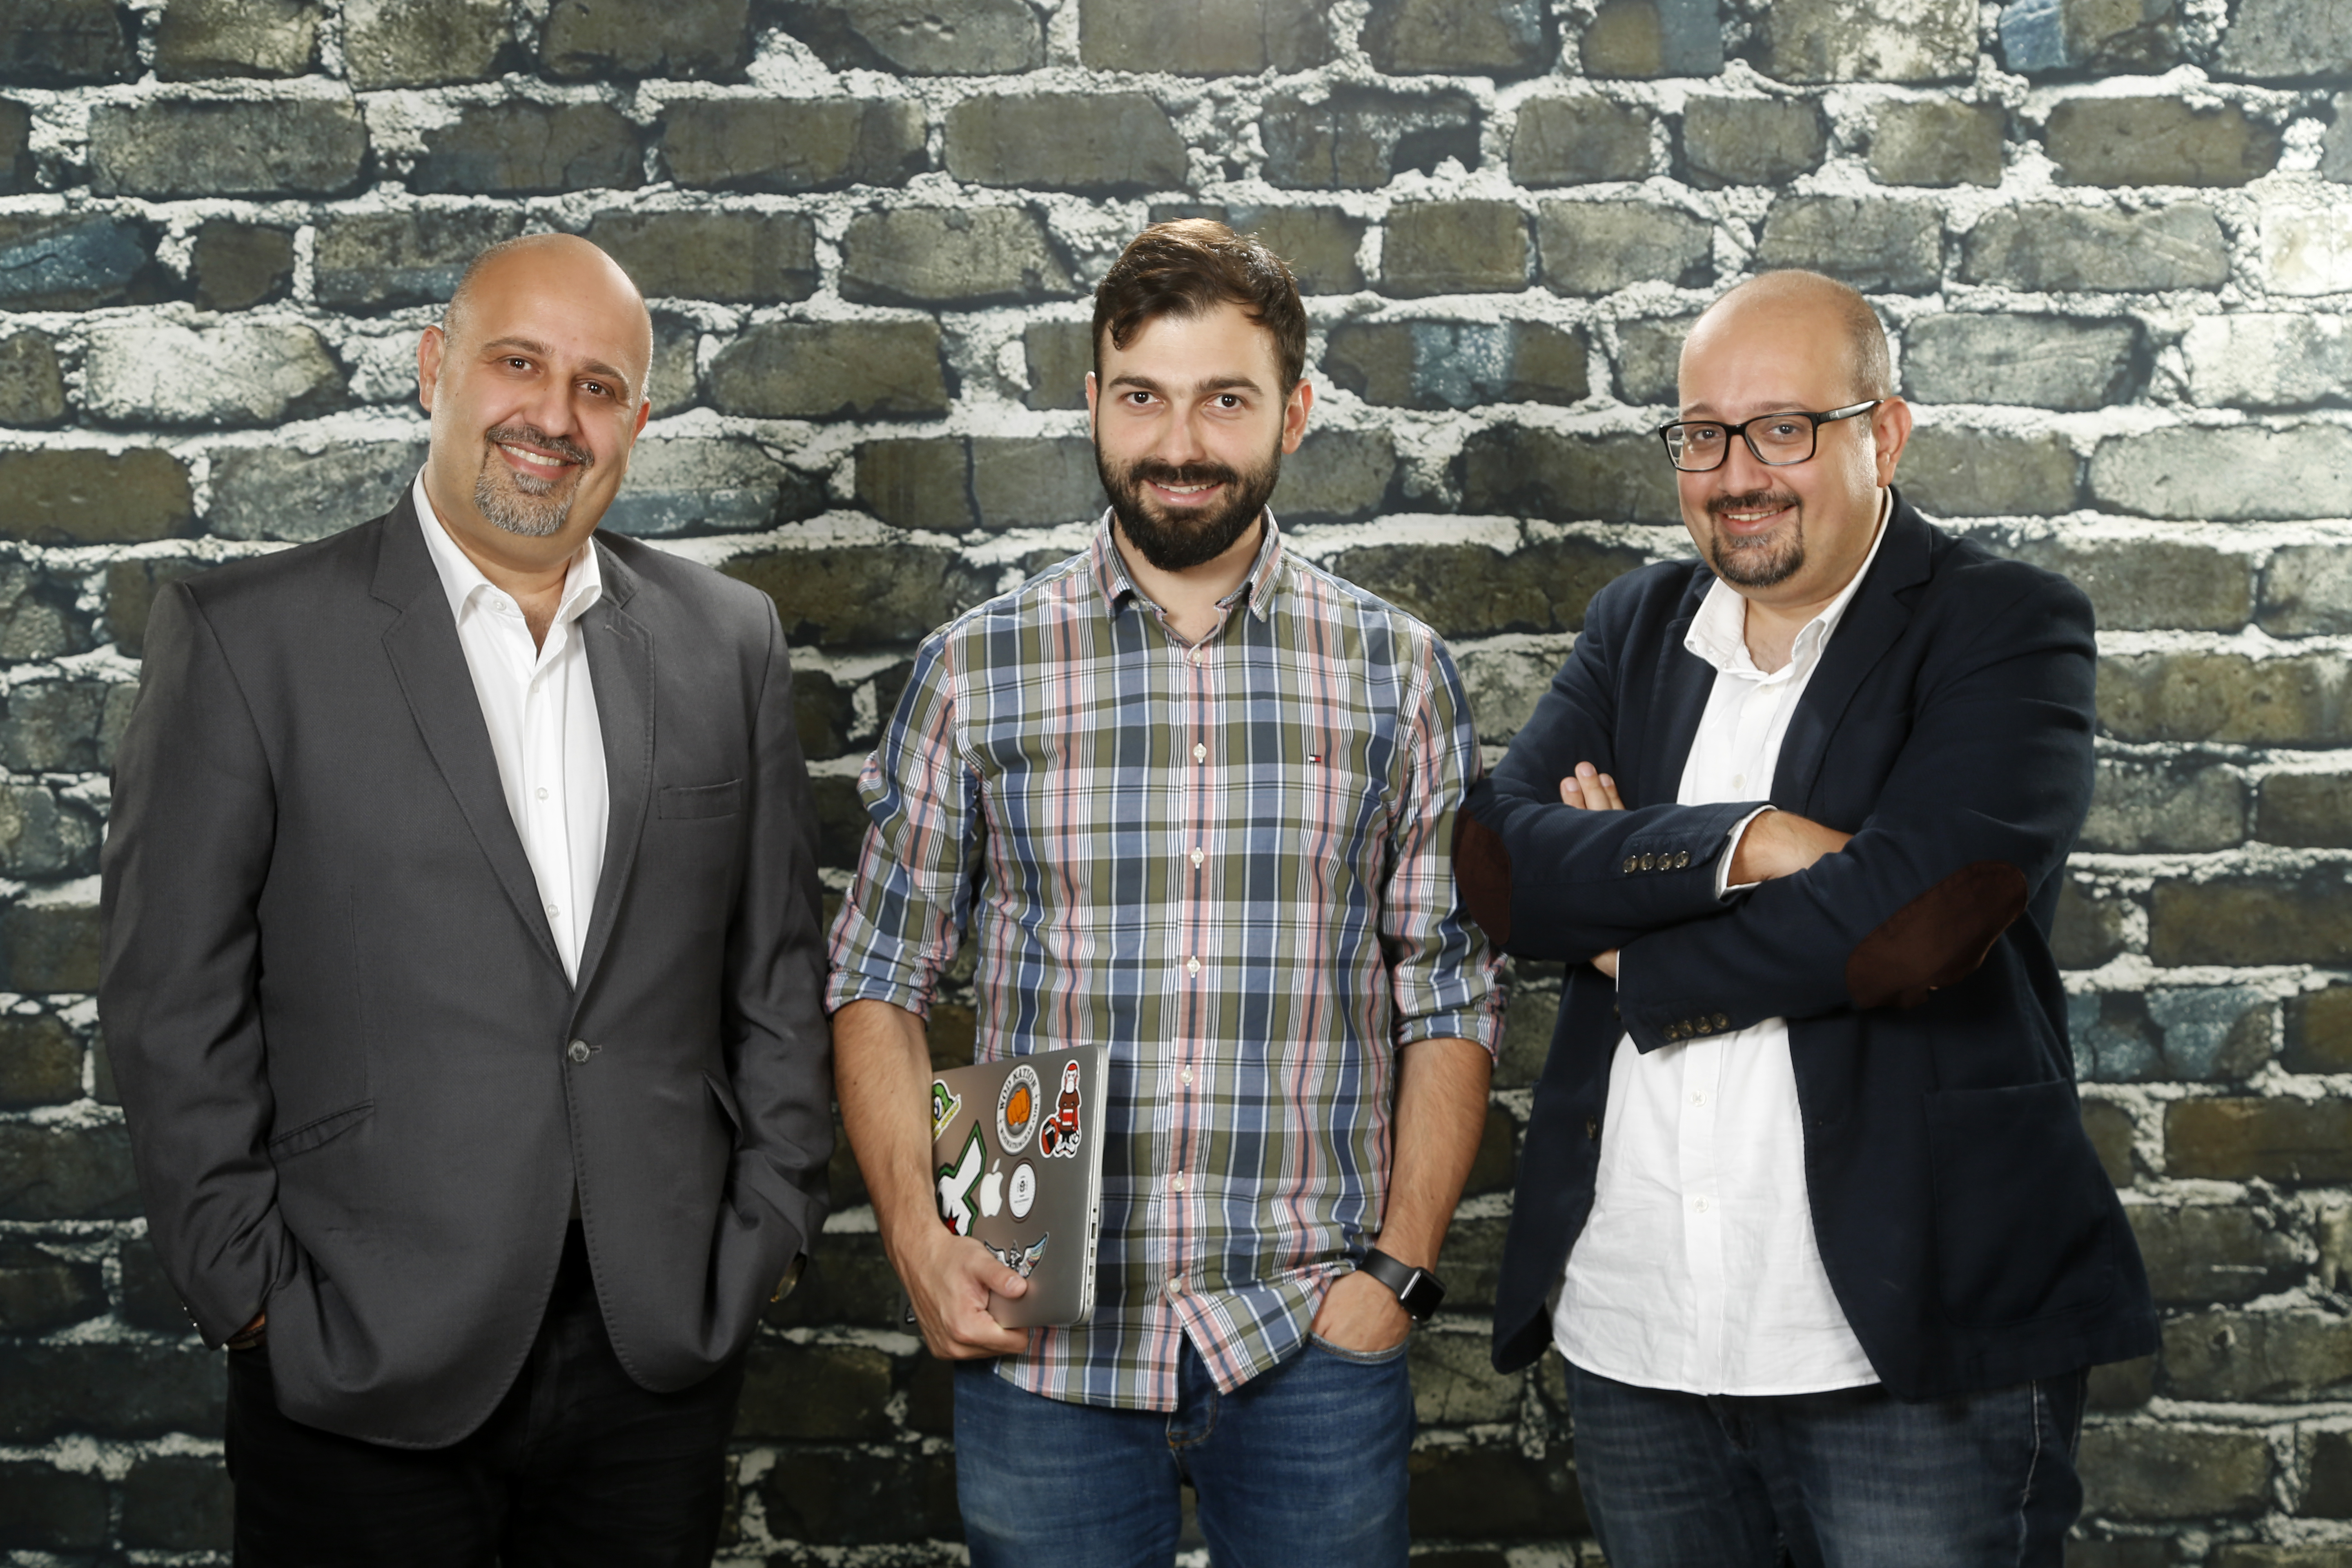 The First Arabic Enabled Cloud Computing Solutions Startup Repzo Secures Seed Funding from Jabbar Internet Group